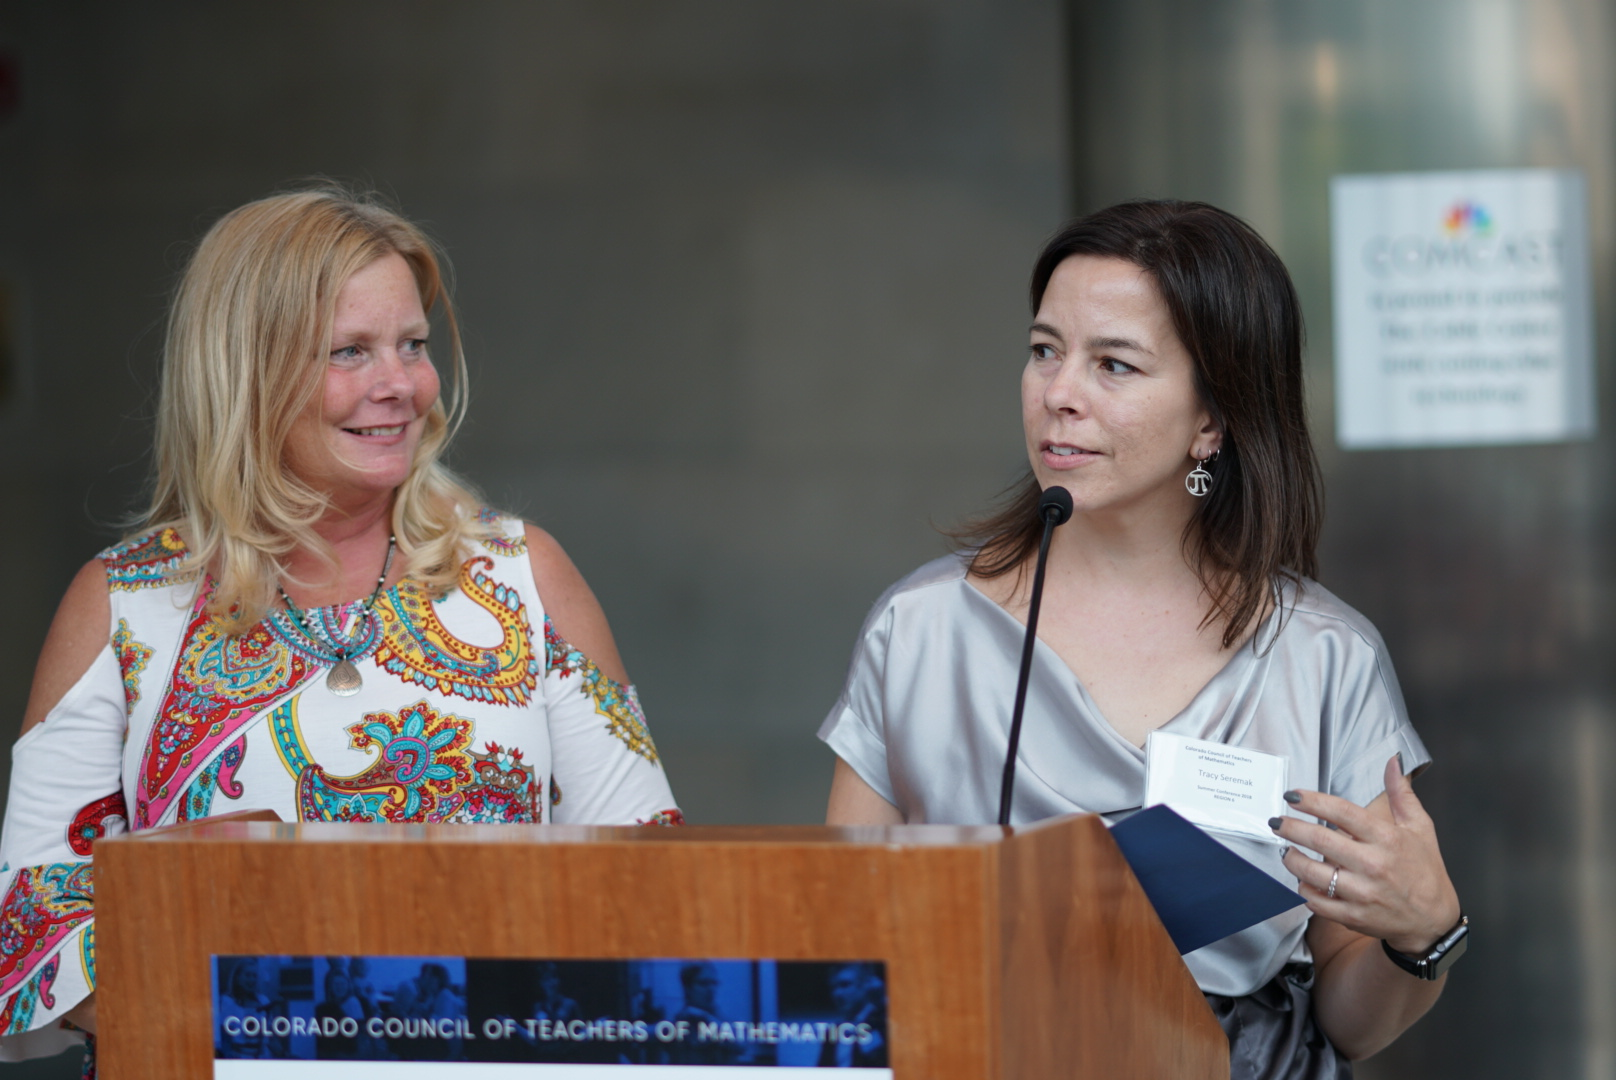 The 2018 CCTM Annual Conference wouldn't happen without the dedication of our two conference co-chairs, Liz Zitterkopf and Tracy Seremak.